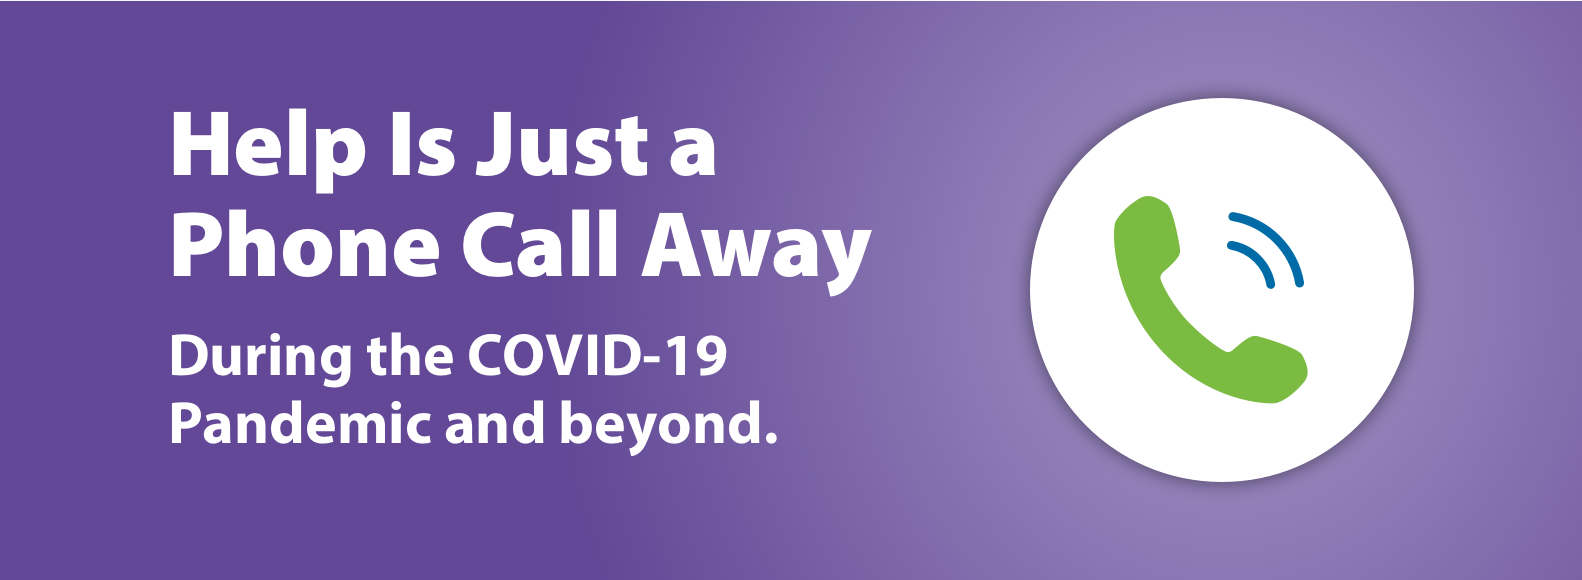 Help Is Just a Phone Call Away. During the COVID-19 Pandemic and beyond.